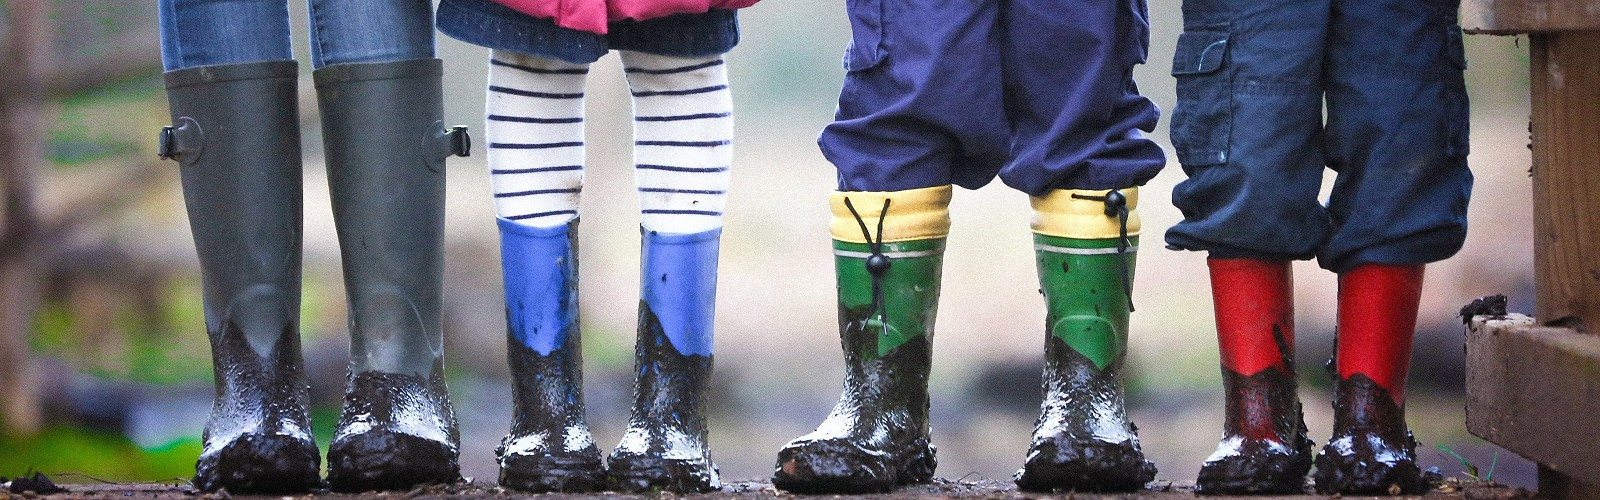 Adult and children wearing muddy wellingtons (image: Ben Wicks on Unsplash)